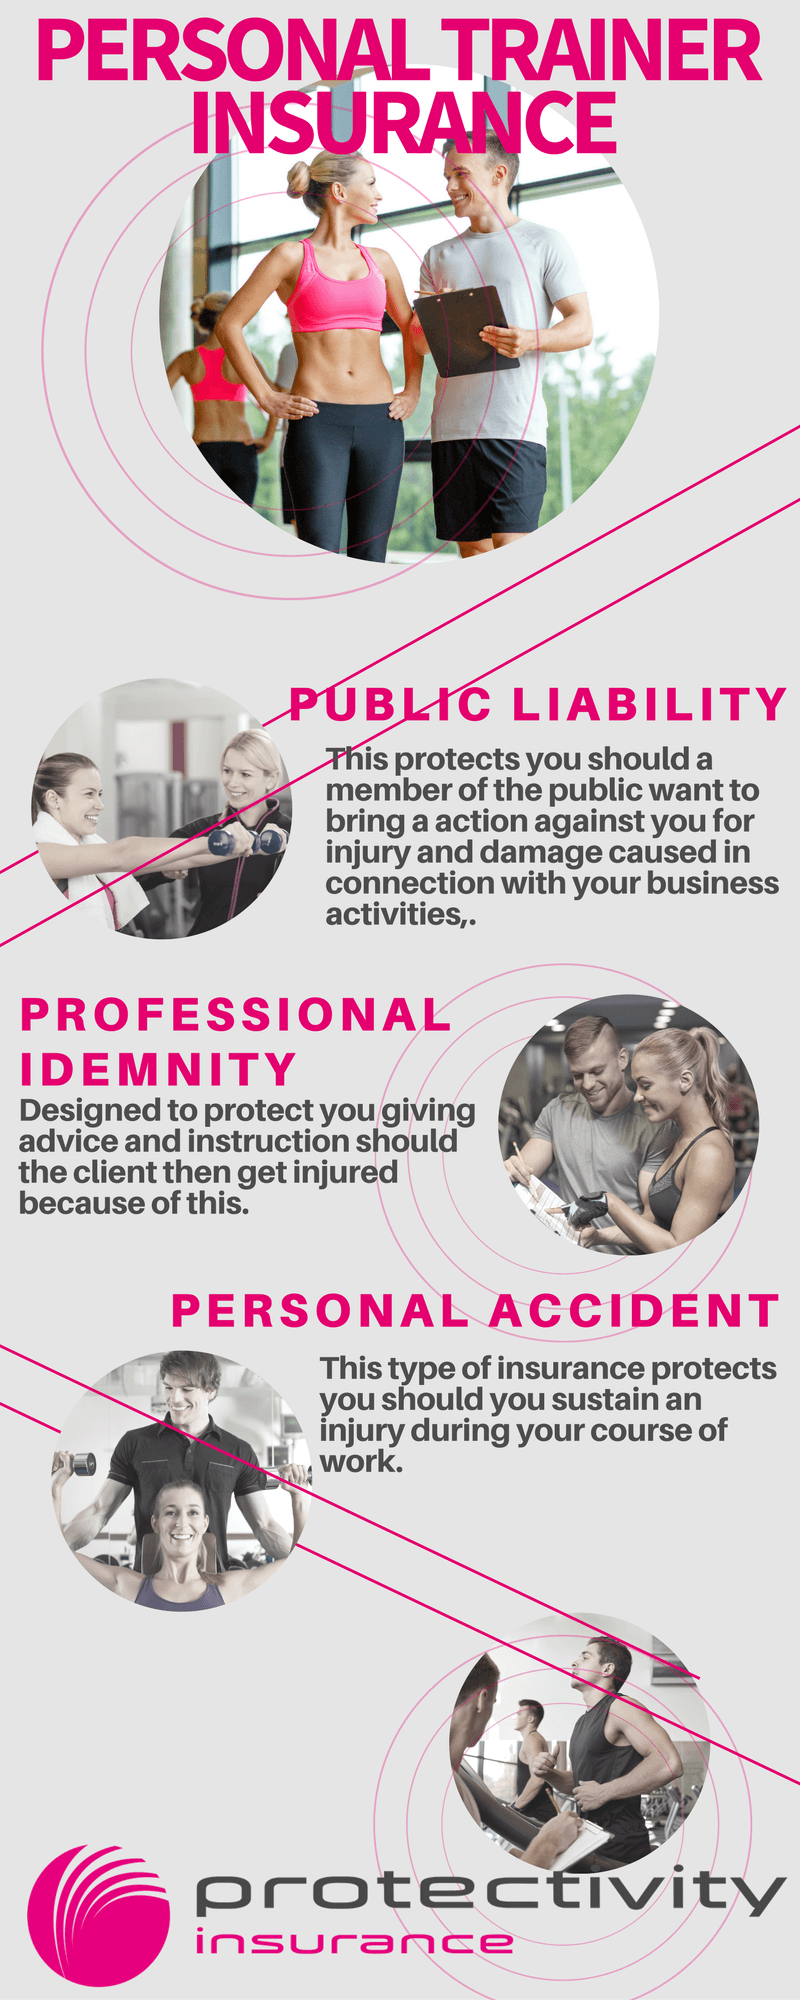 Personal Trainer Insurance – What Do I Need?